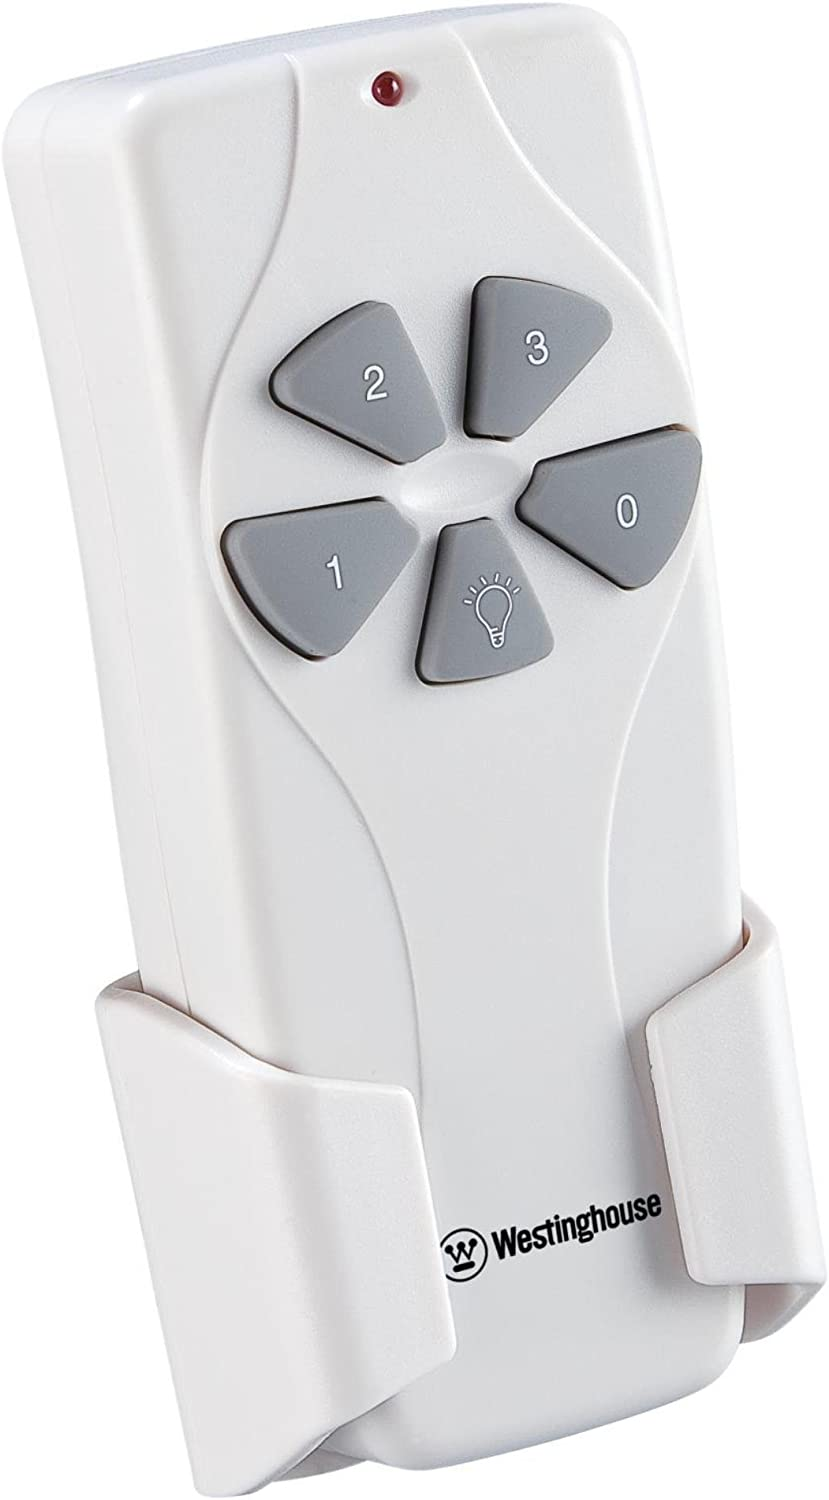 Westinghouse Lighting 7787000 100% quality warranty! Ceiling Fan Contr Light Remote 5 ☆ very popular and